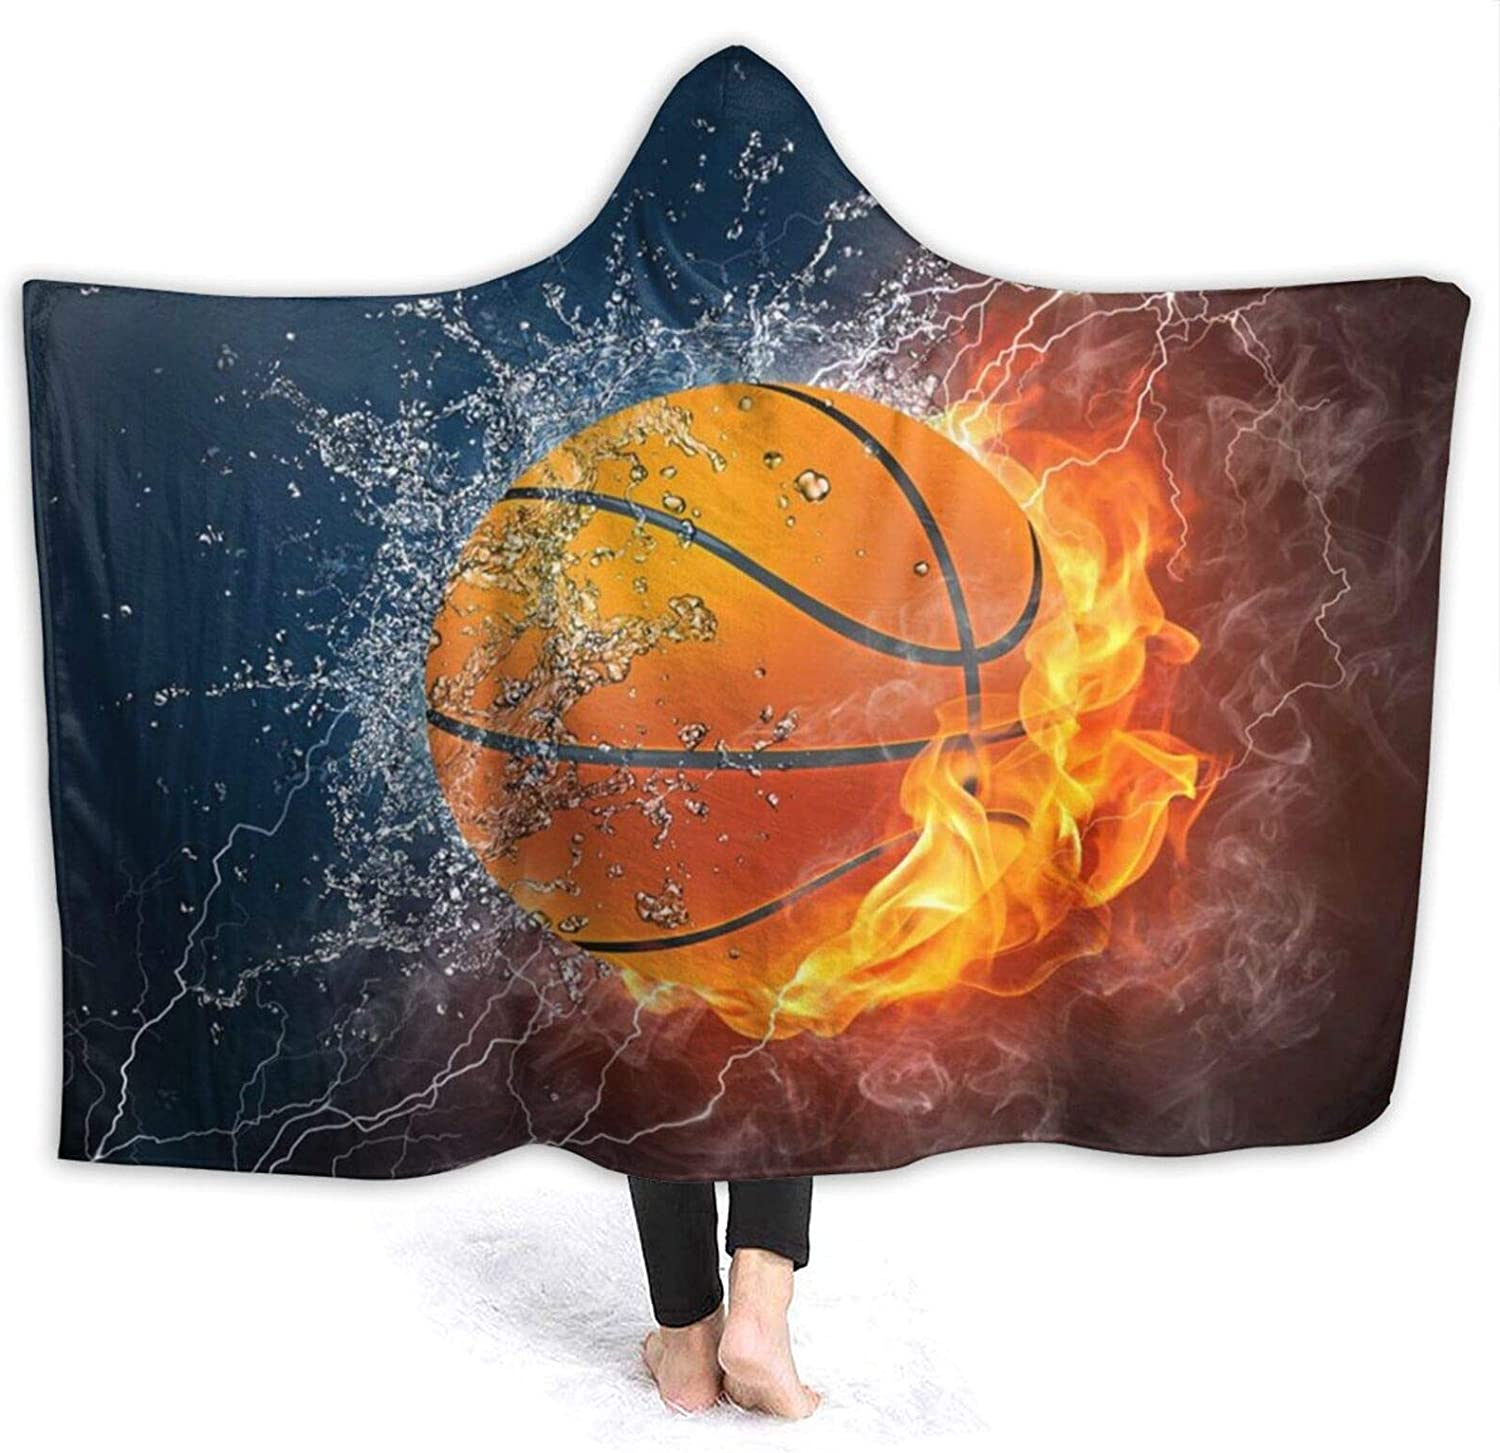 NYIVBE Basketball On Fire Max 57% OFF and Water Hooded Soft Direct stock discount Blanket Co Super